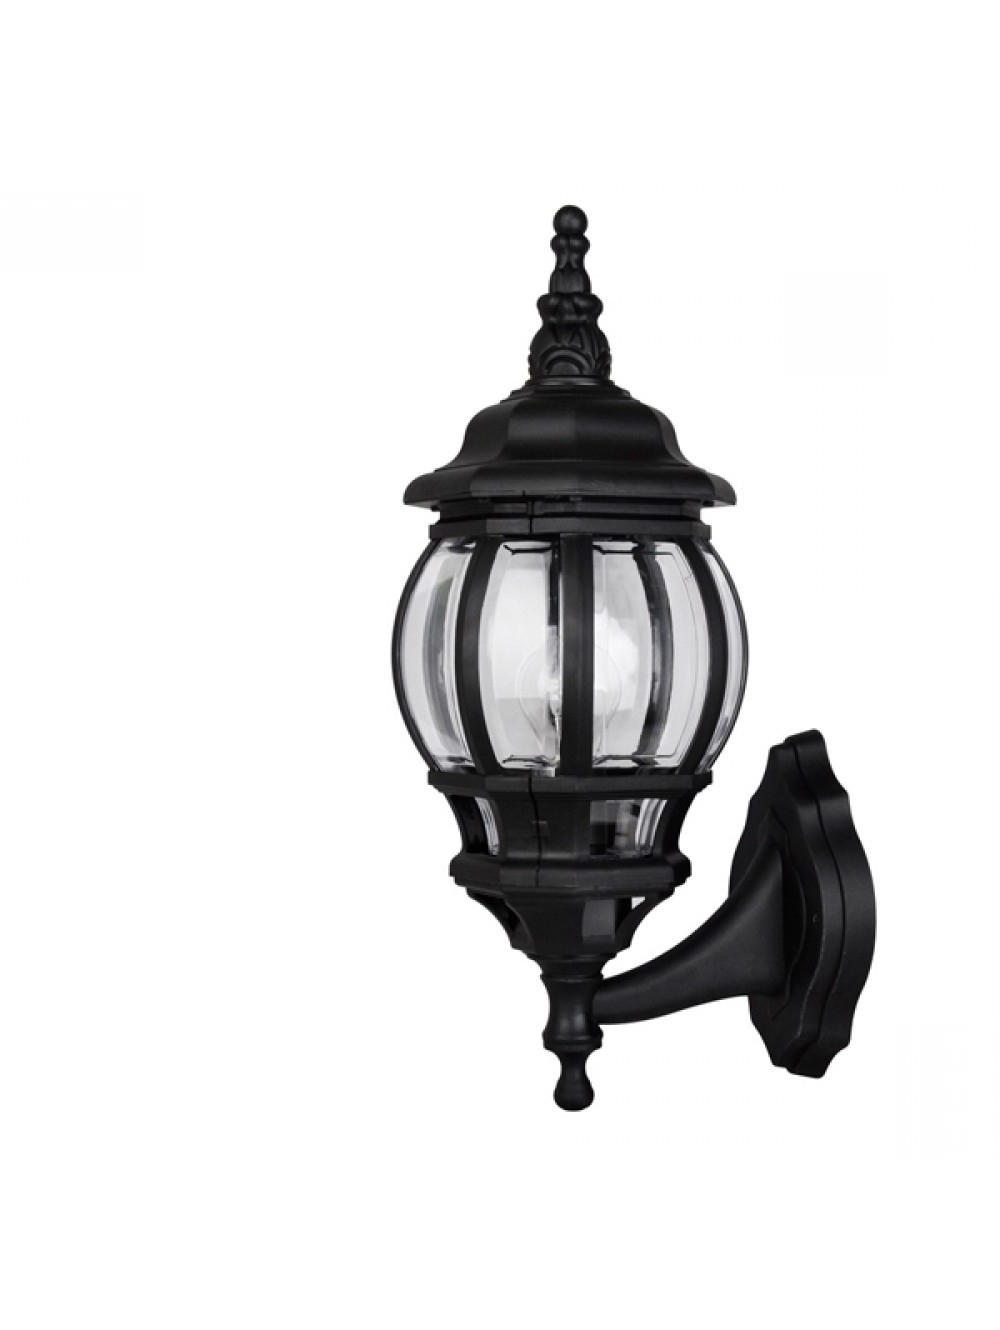 Ip44 Windsor Outdoor Up / Down Wall Lantern Pertaining To Most Recent Outdoor Mains Lanterns (View 19 of 20)